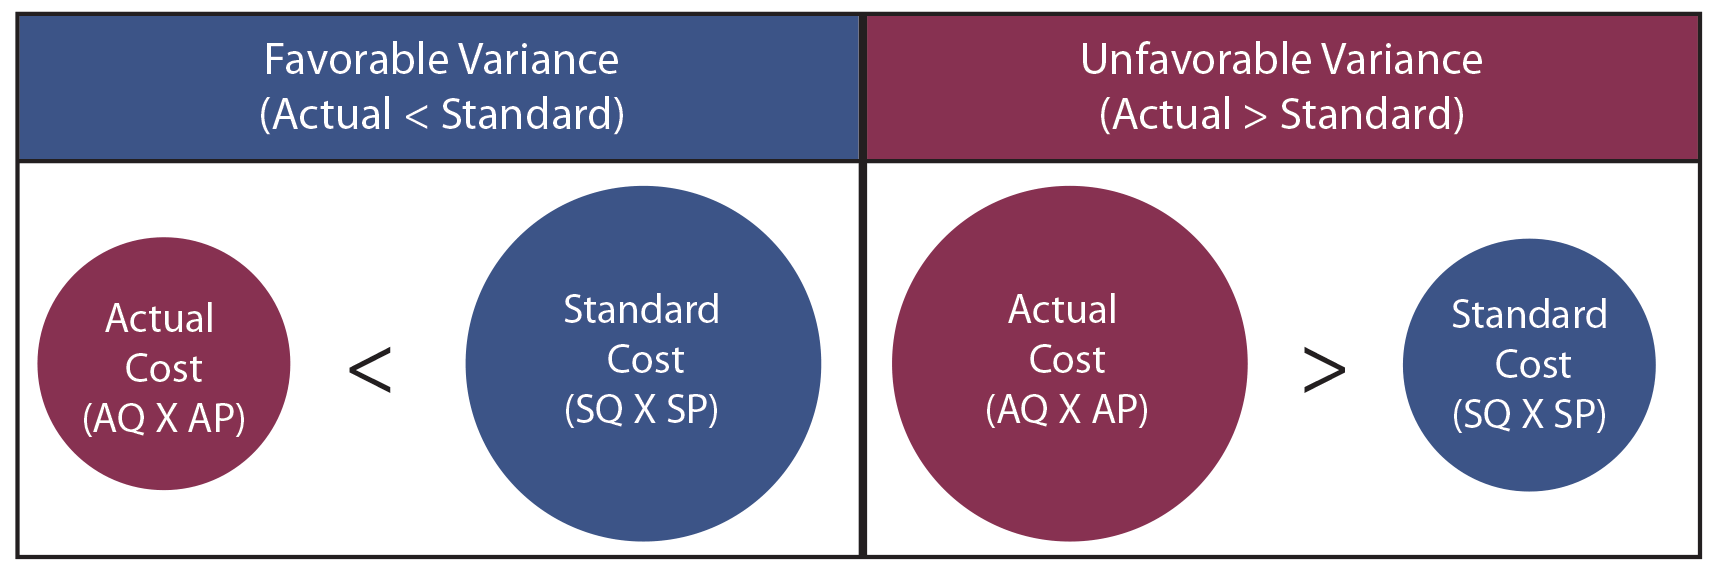 Variance Analysis Illustration